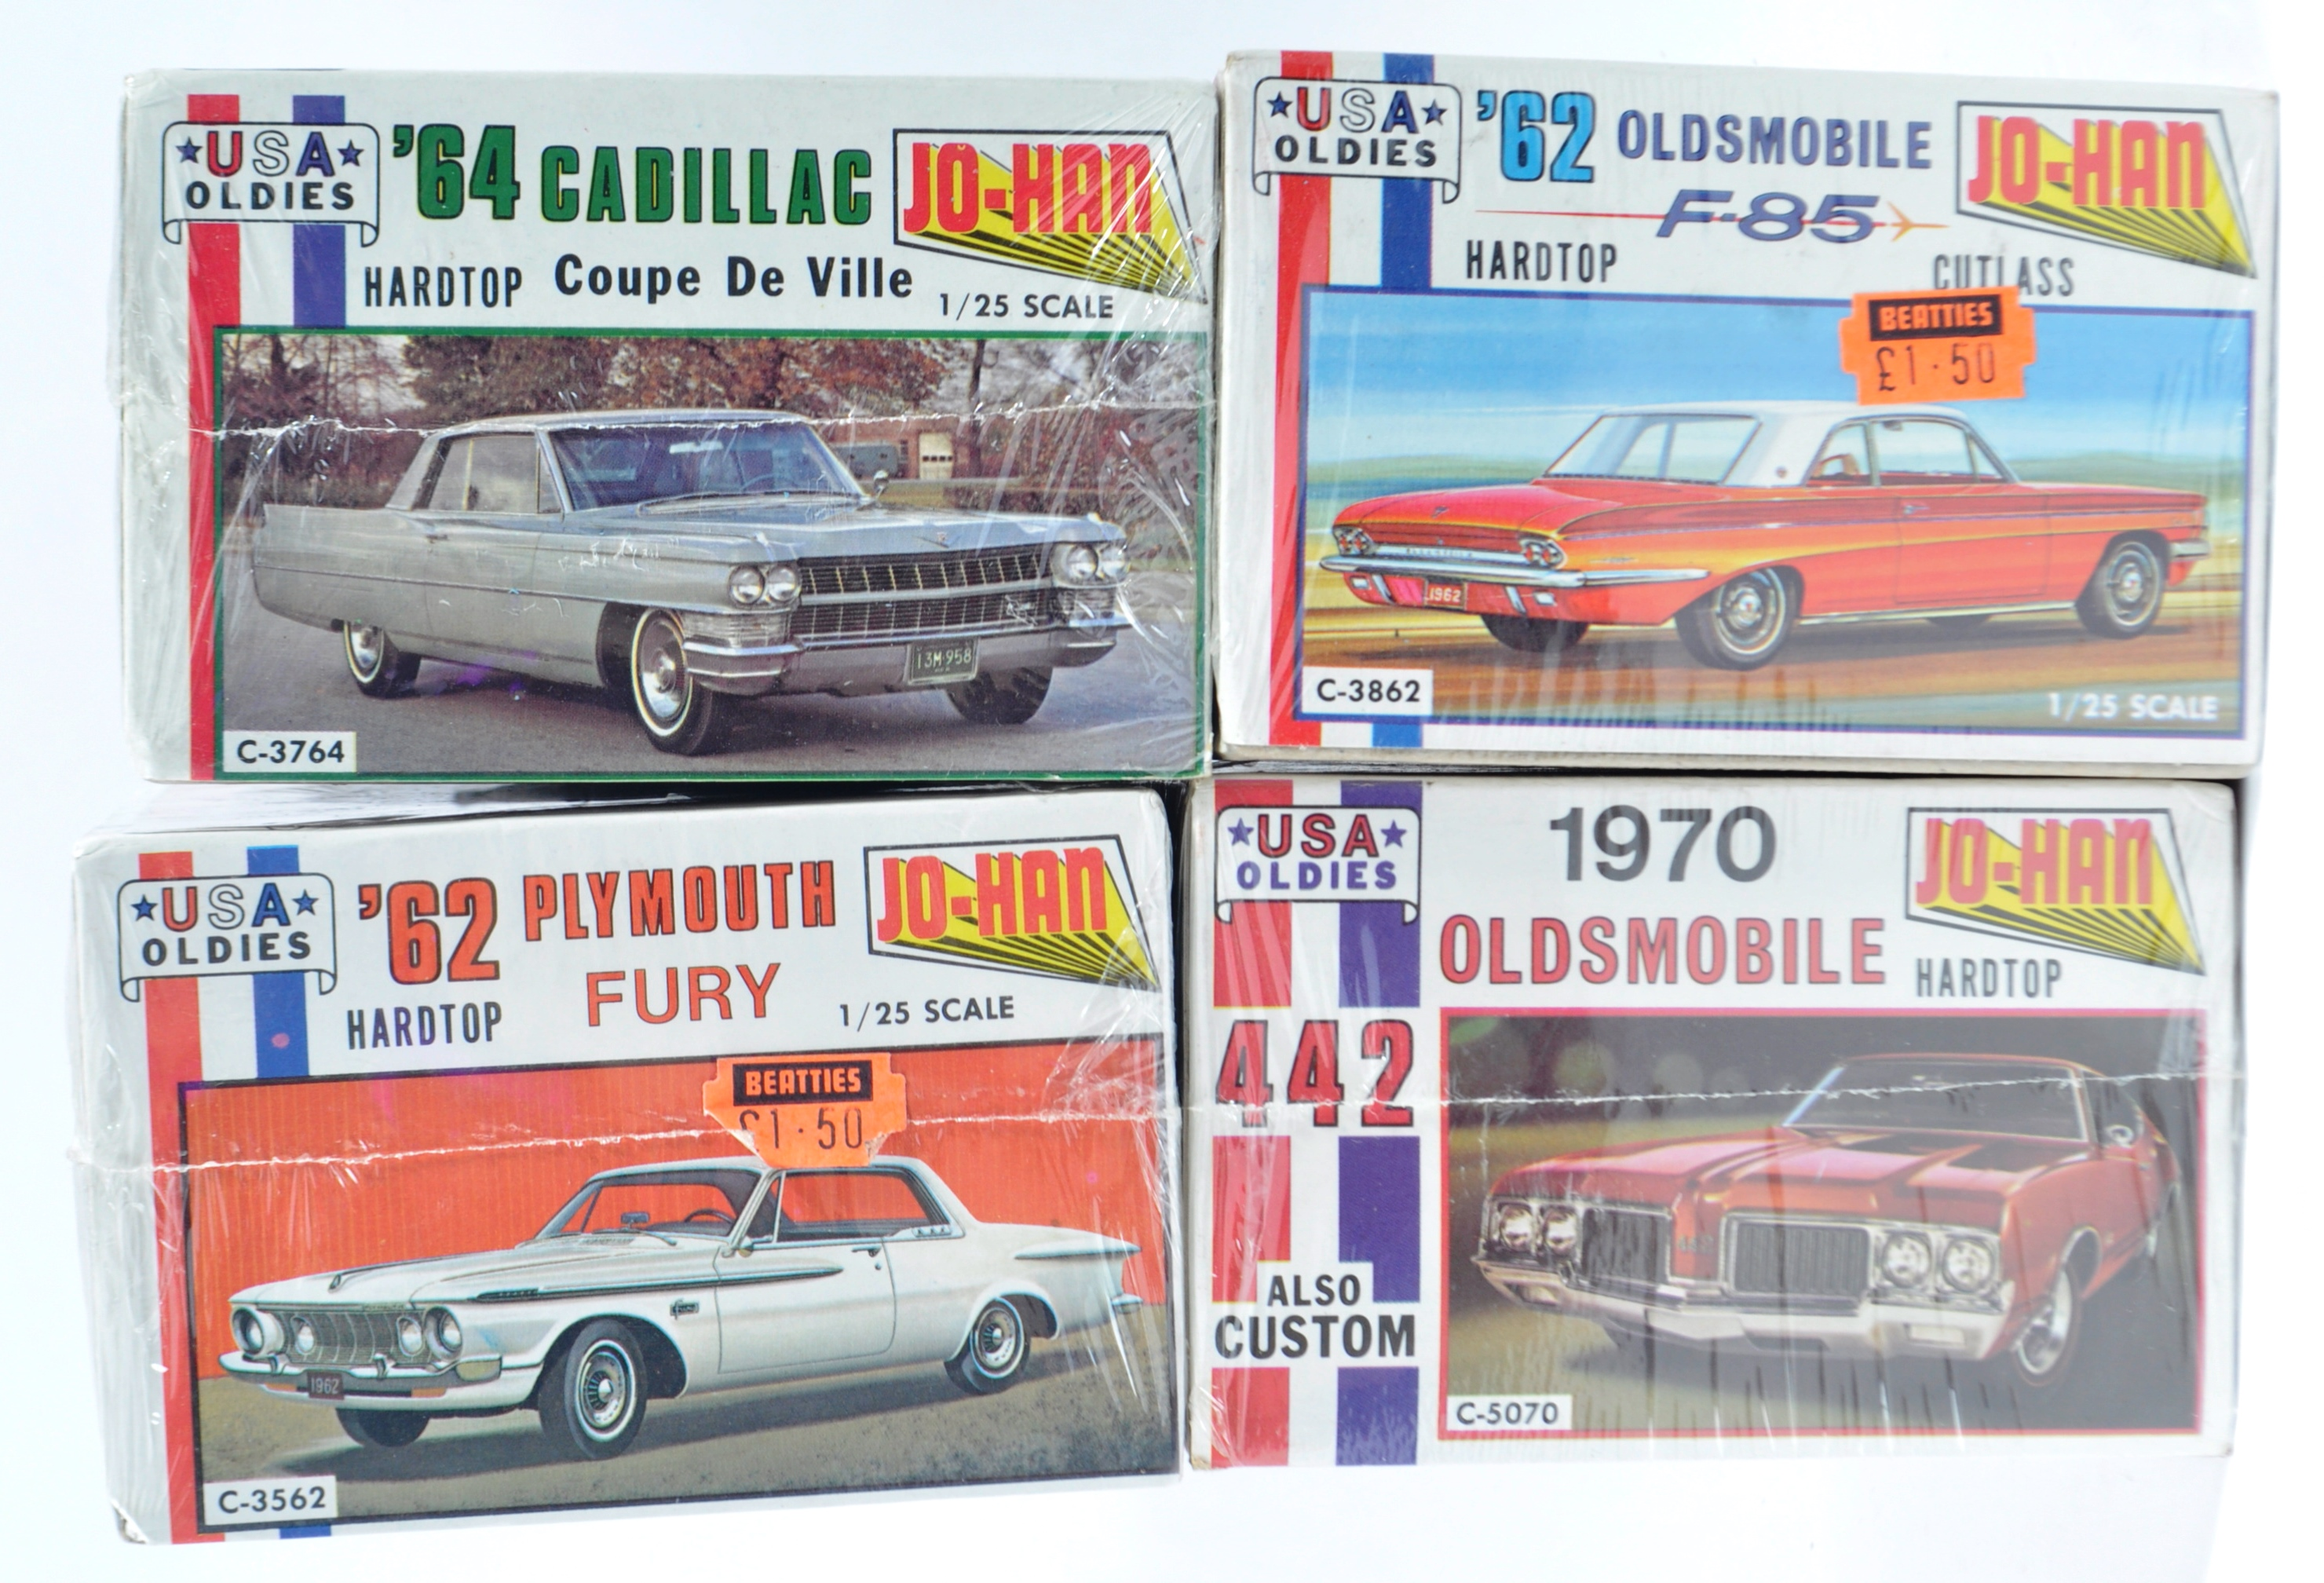 COLLECTION OF X4 VINTAGE JO-HAN FACTORY SEALED MODEL KITS - Image 7 of 7